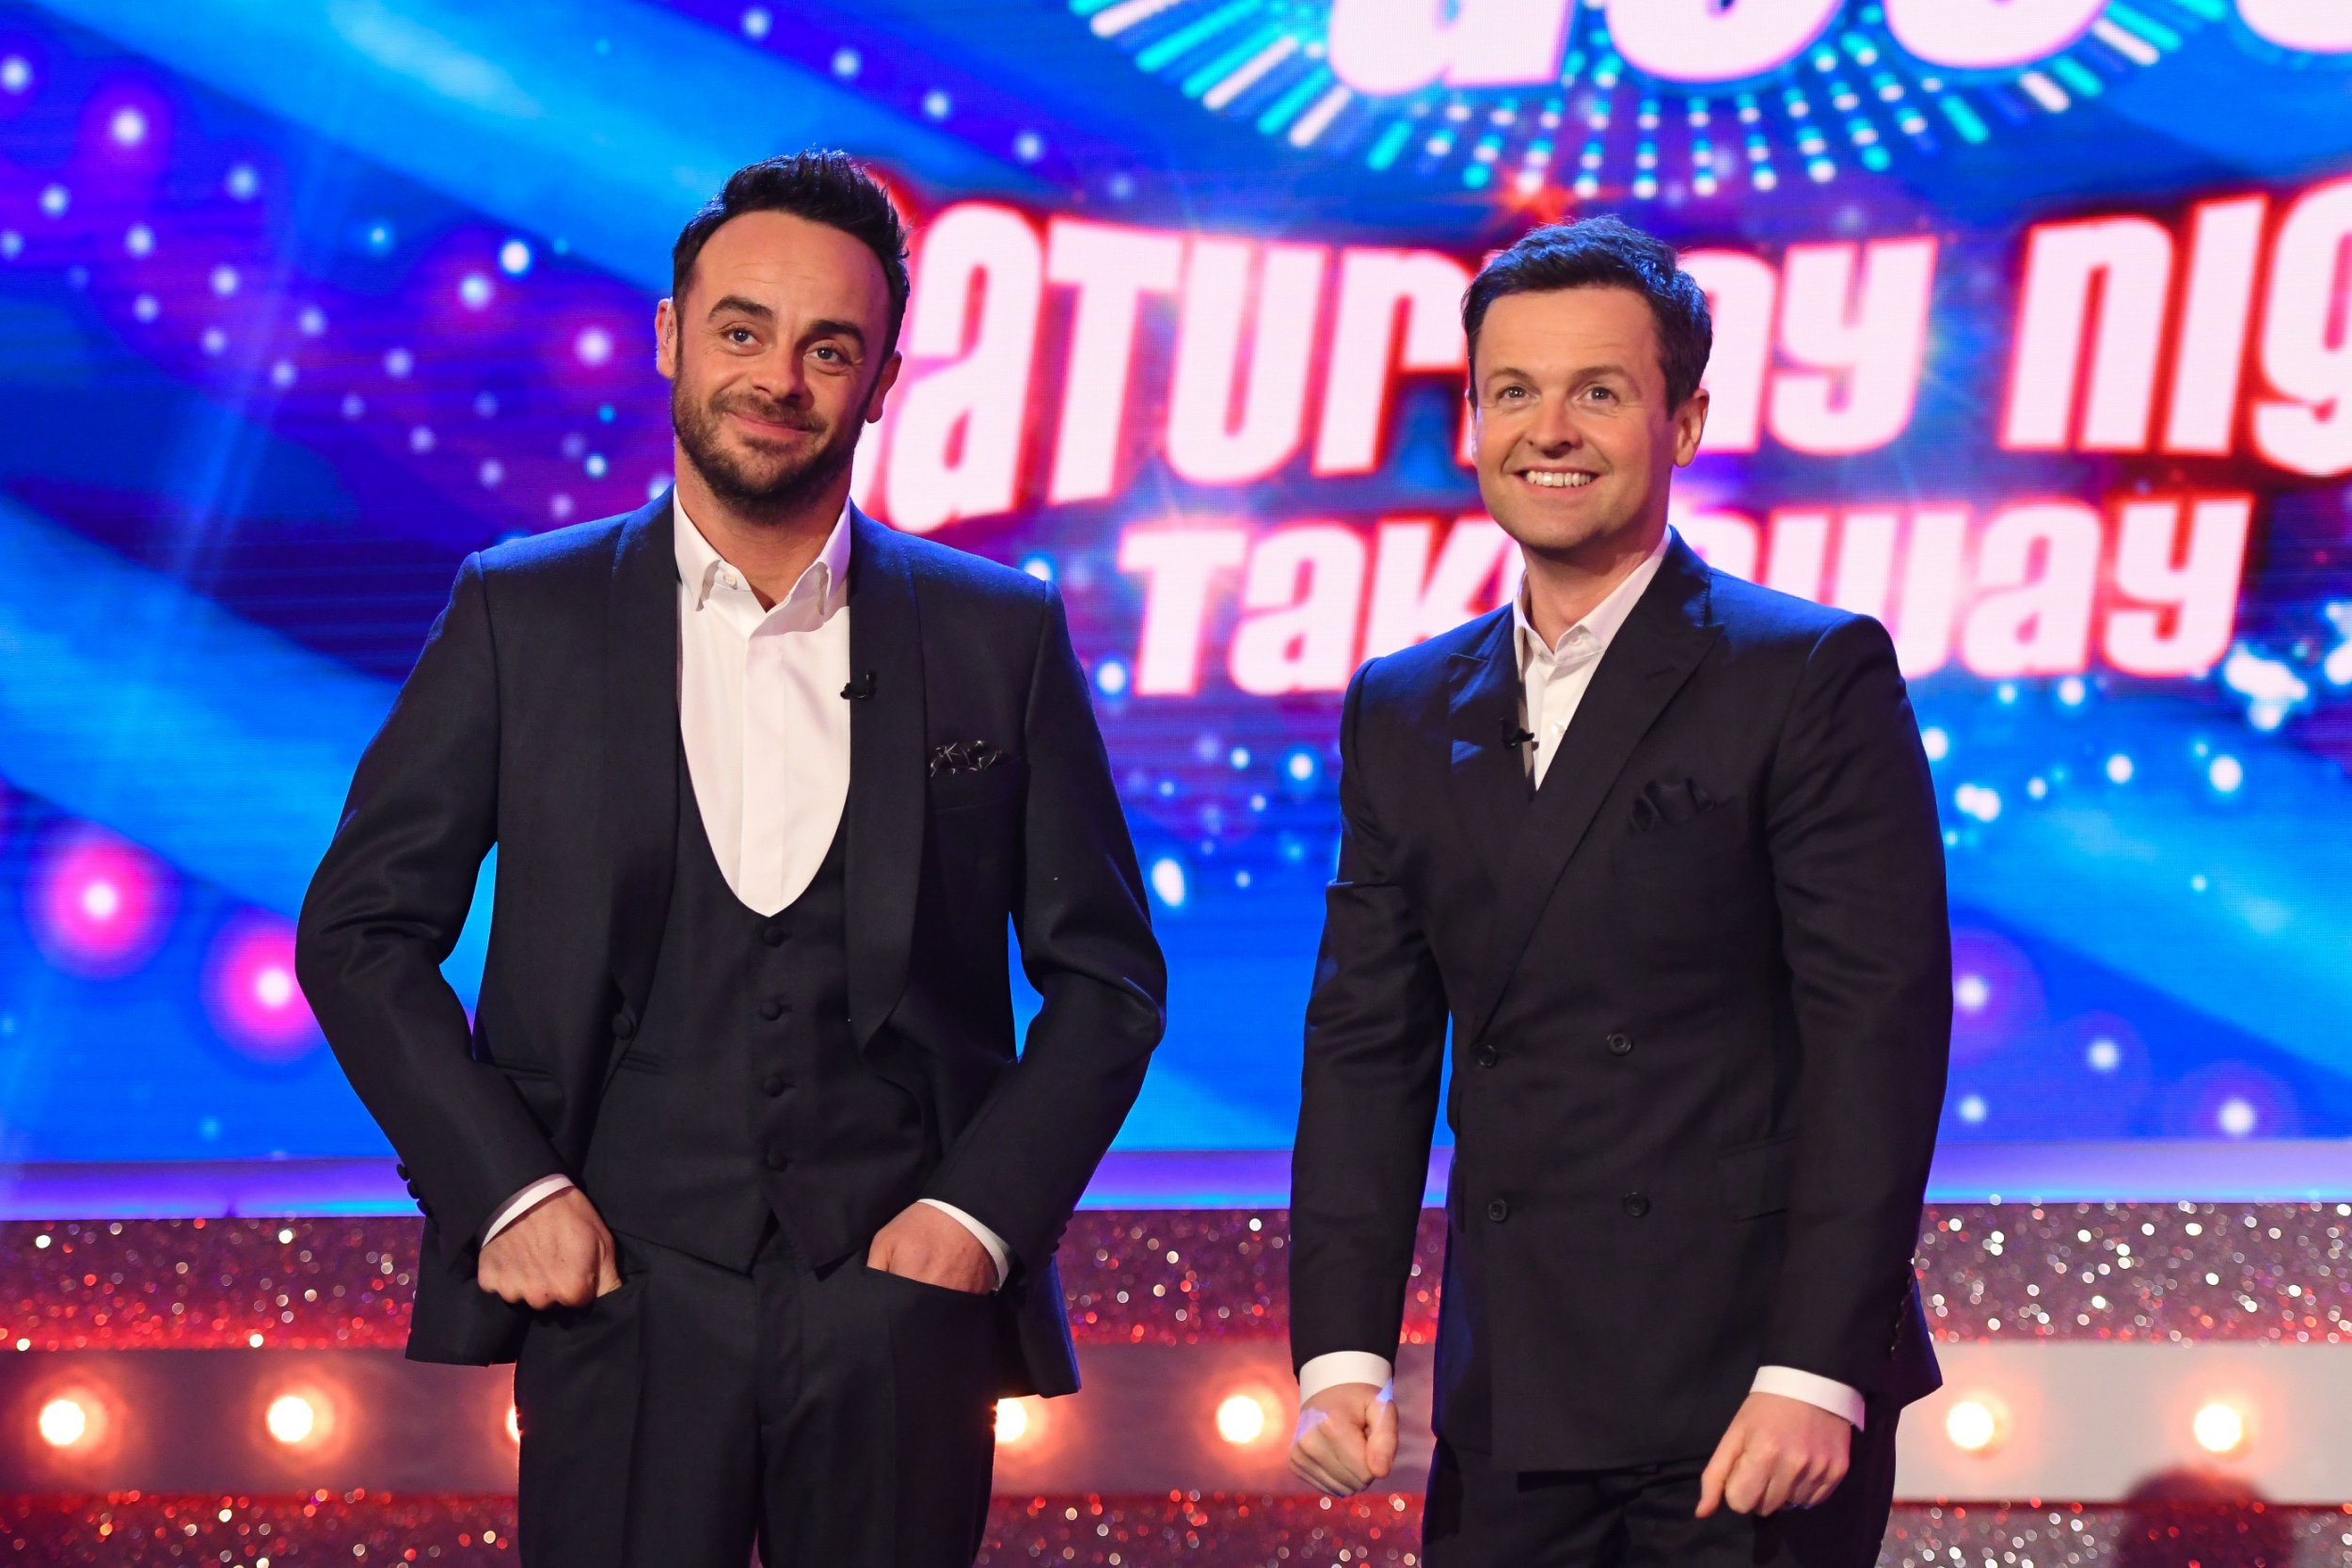 Iain Lee shows his support to Ant McPartlin: 'He's an inspiration to anyone battling addiction'